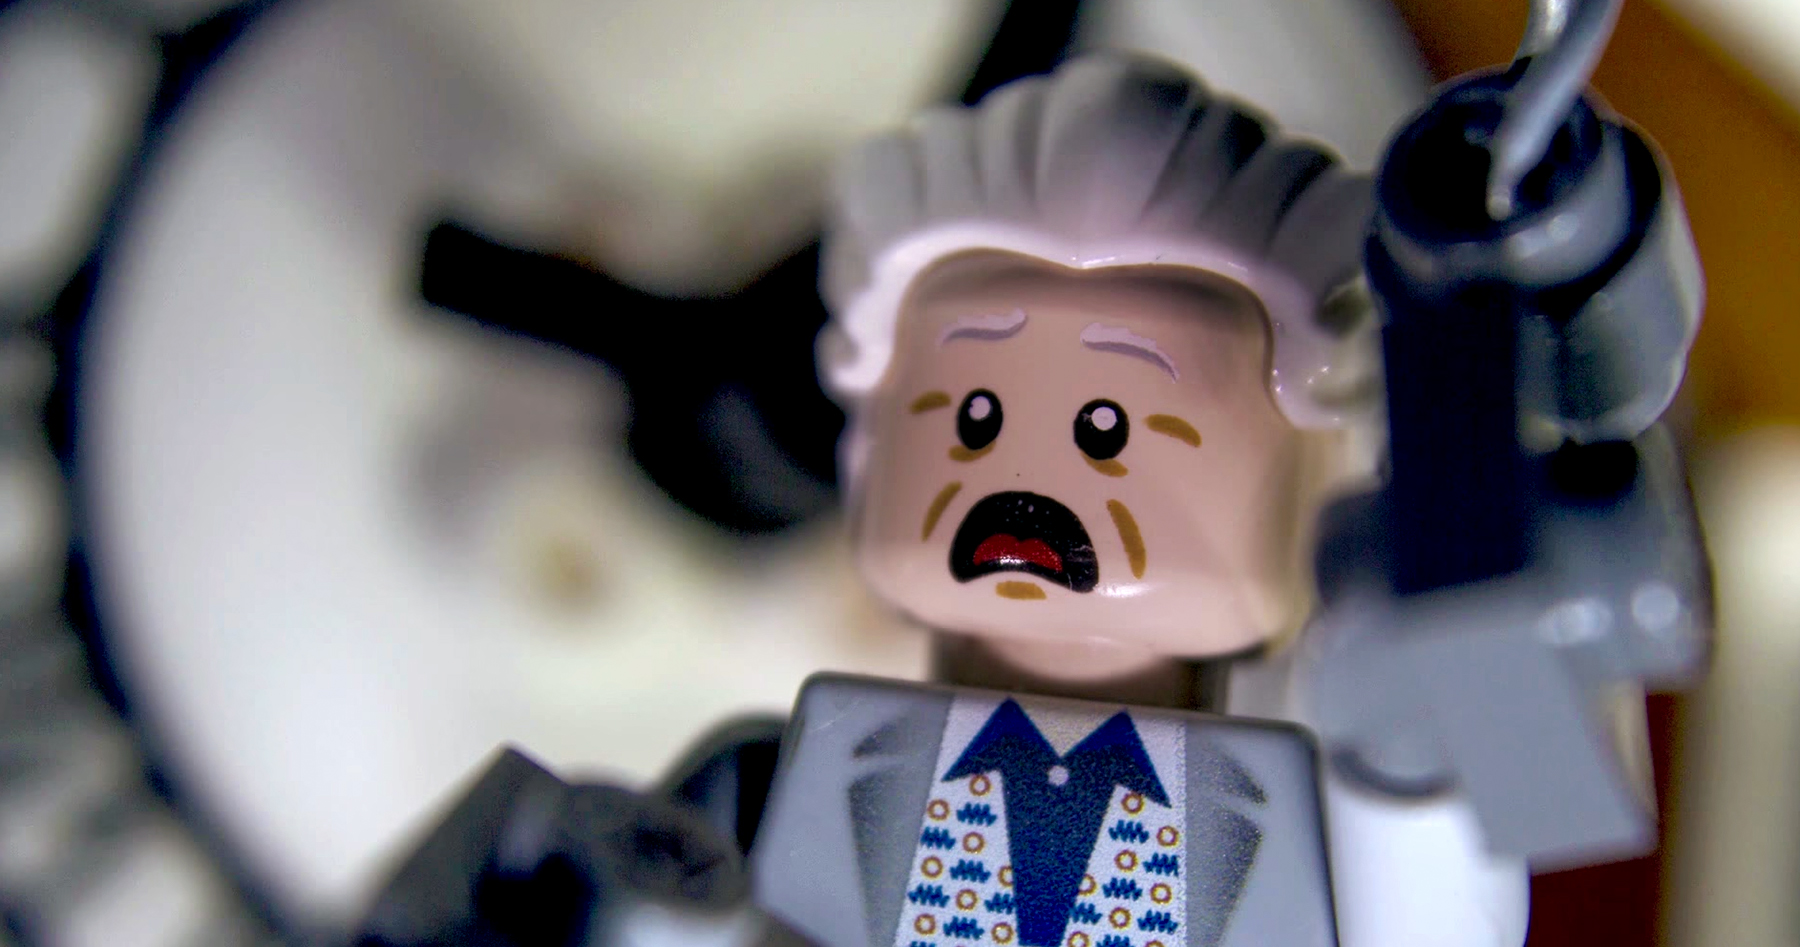 Back To The Future S Clock Tower Scene Remade With Lego